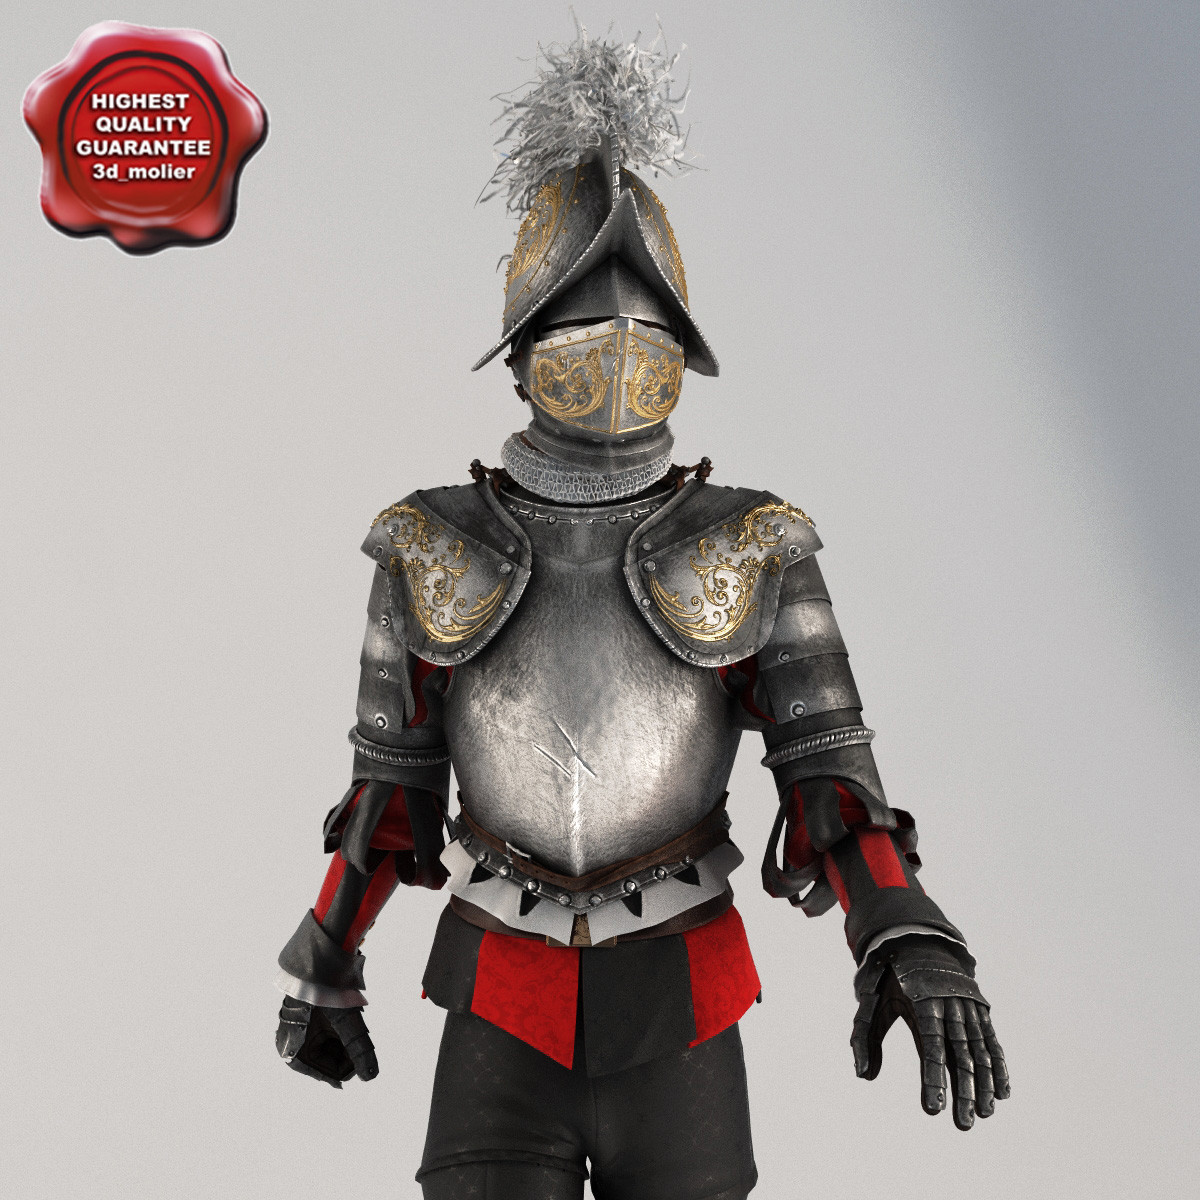 swiss guardsmen vatican knight 3d model